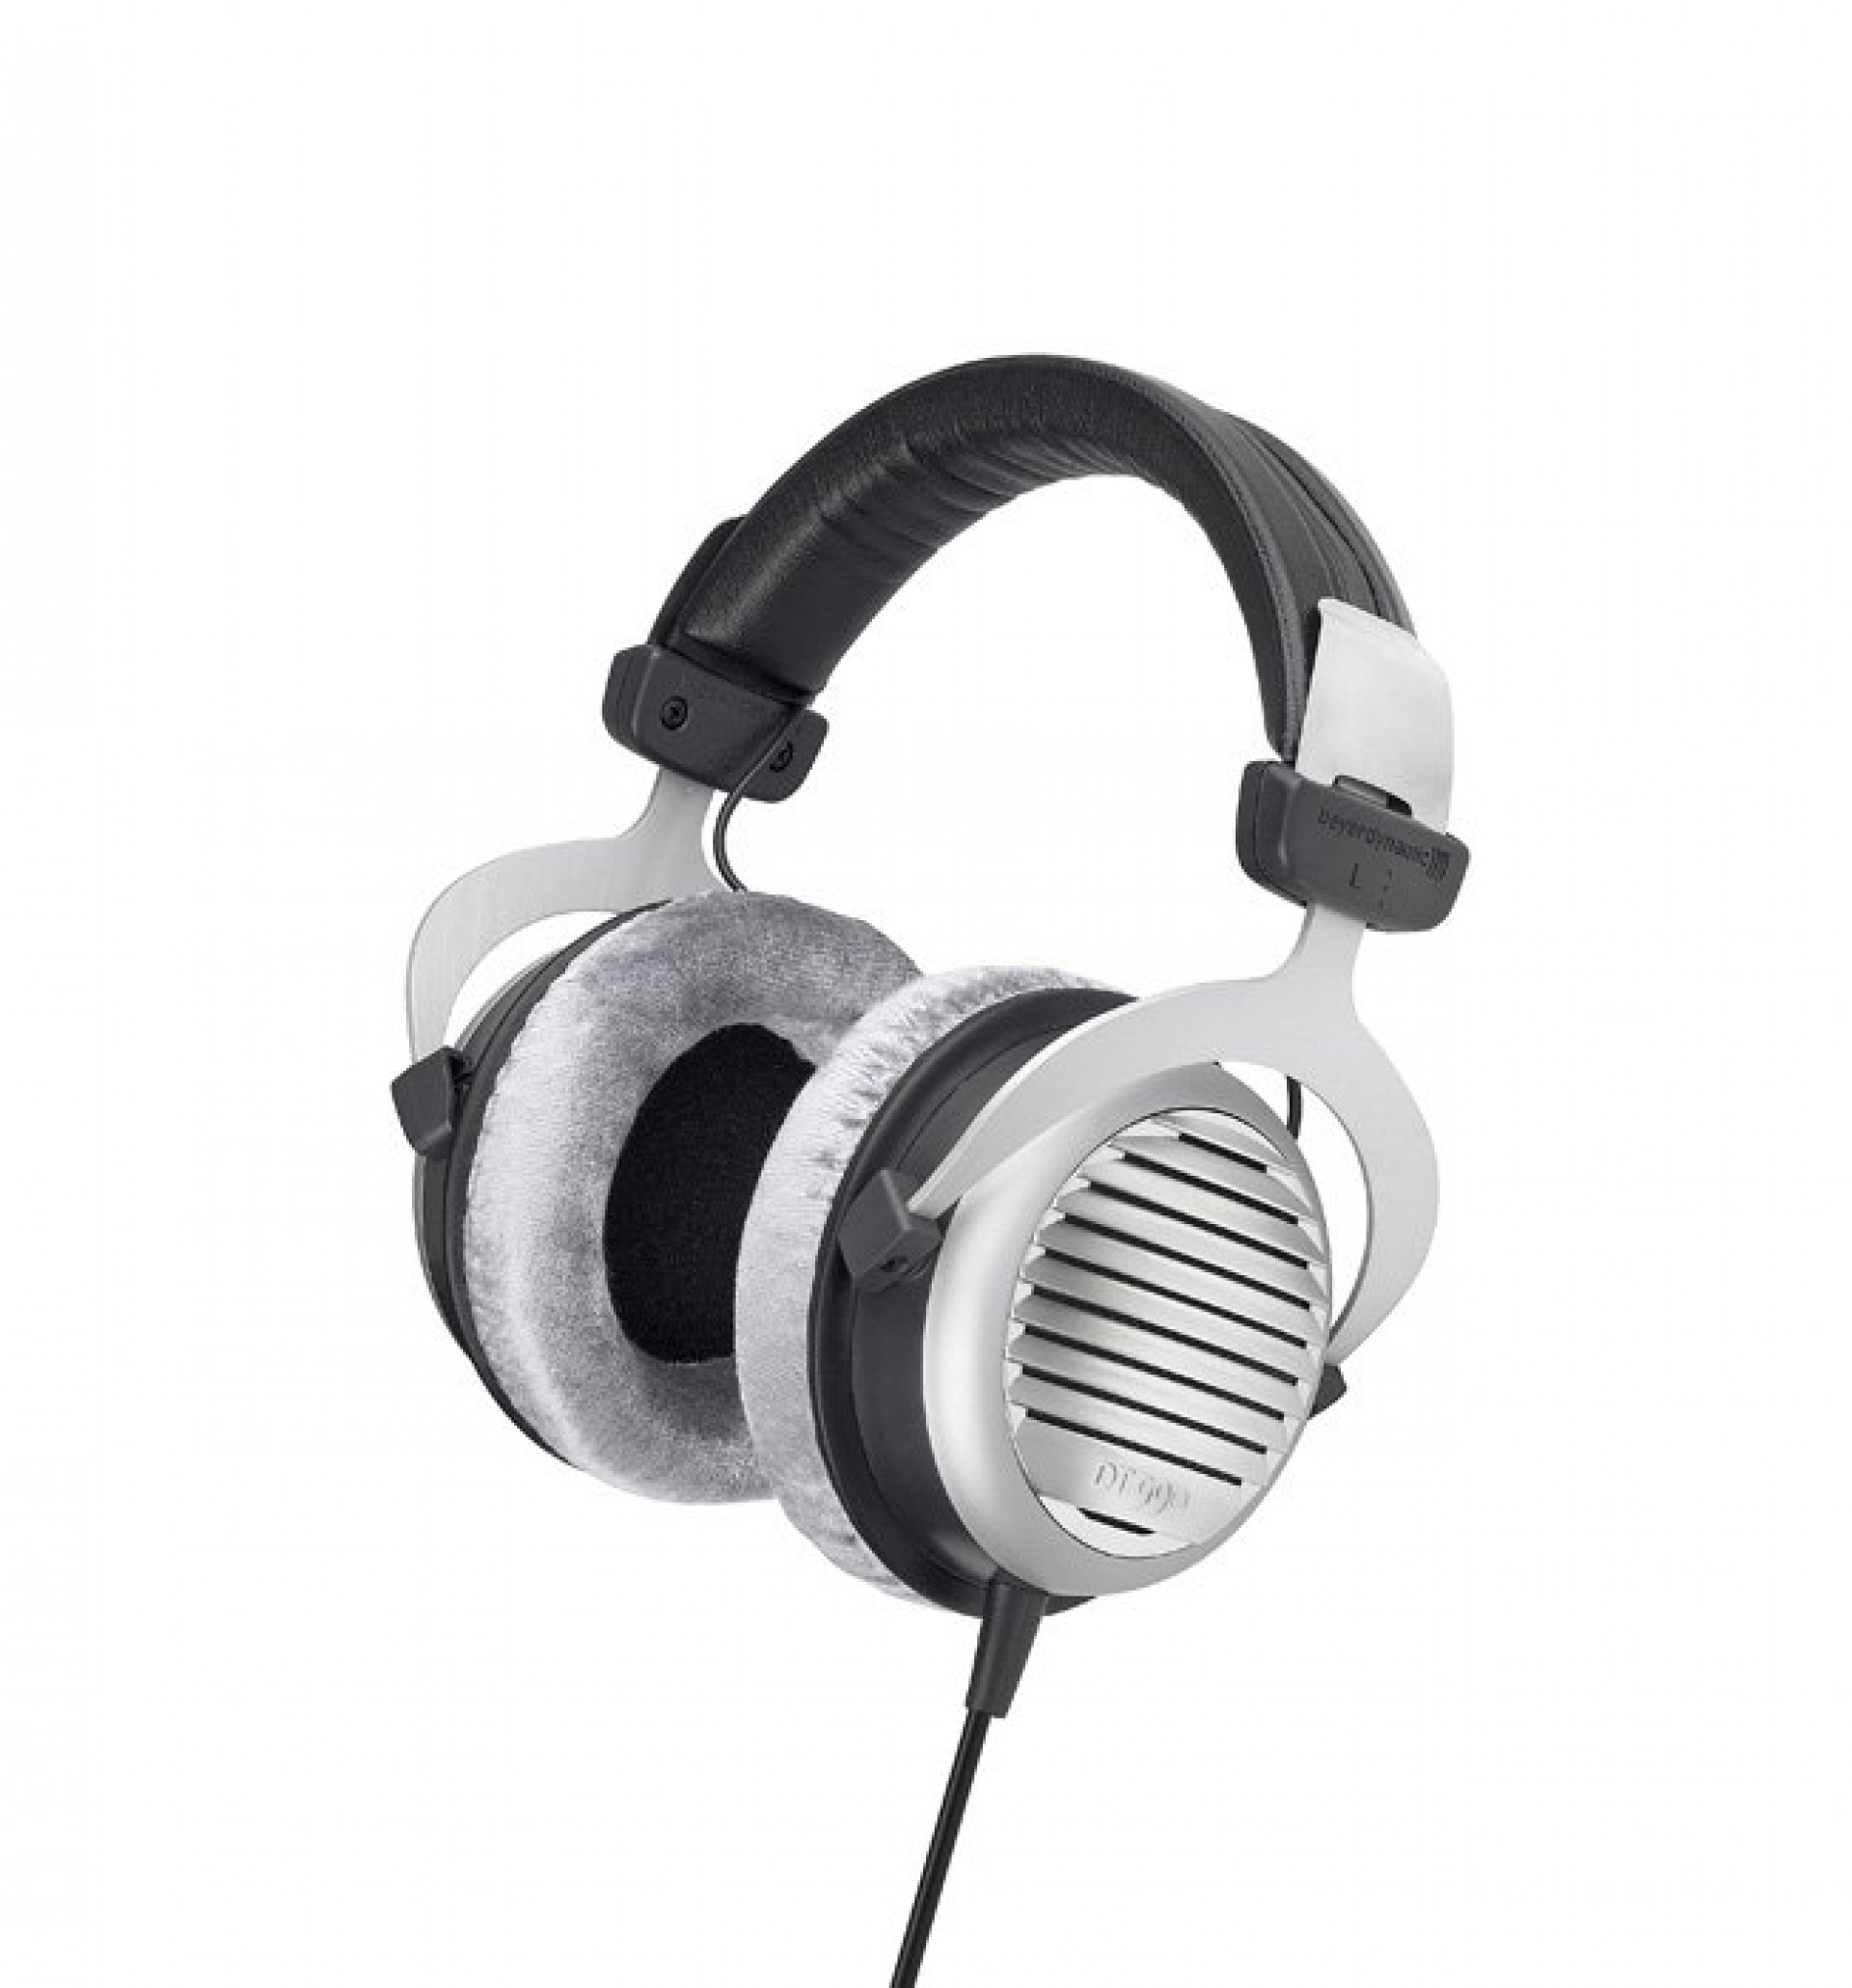 BEYERDYNAMIC DT990 Edition 250ohm